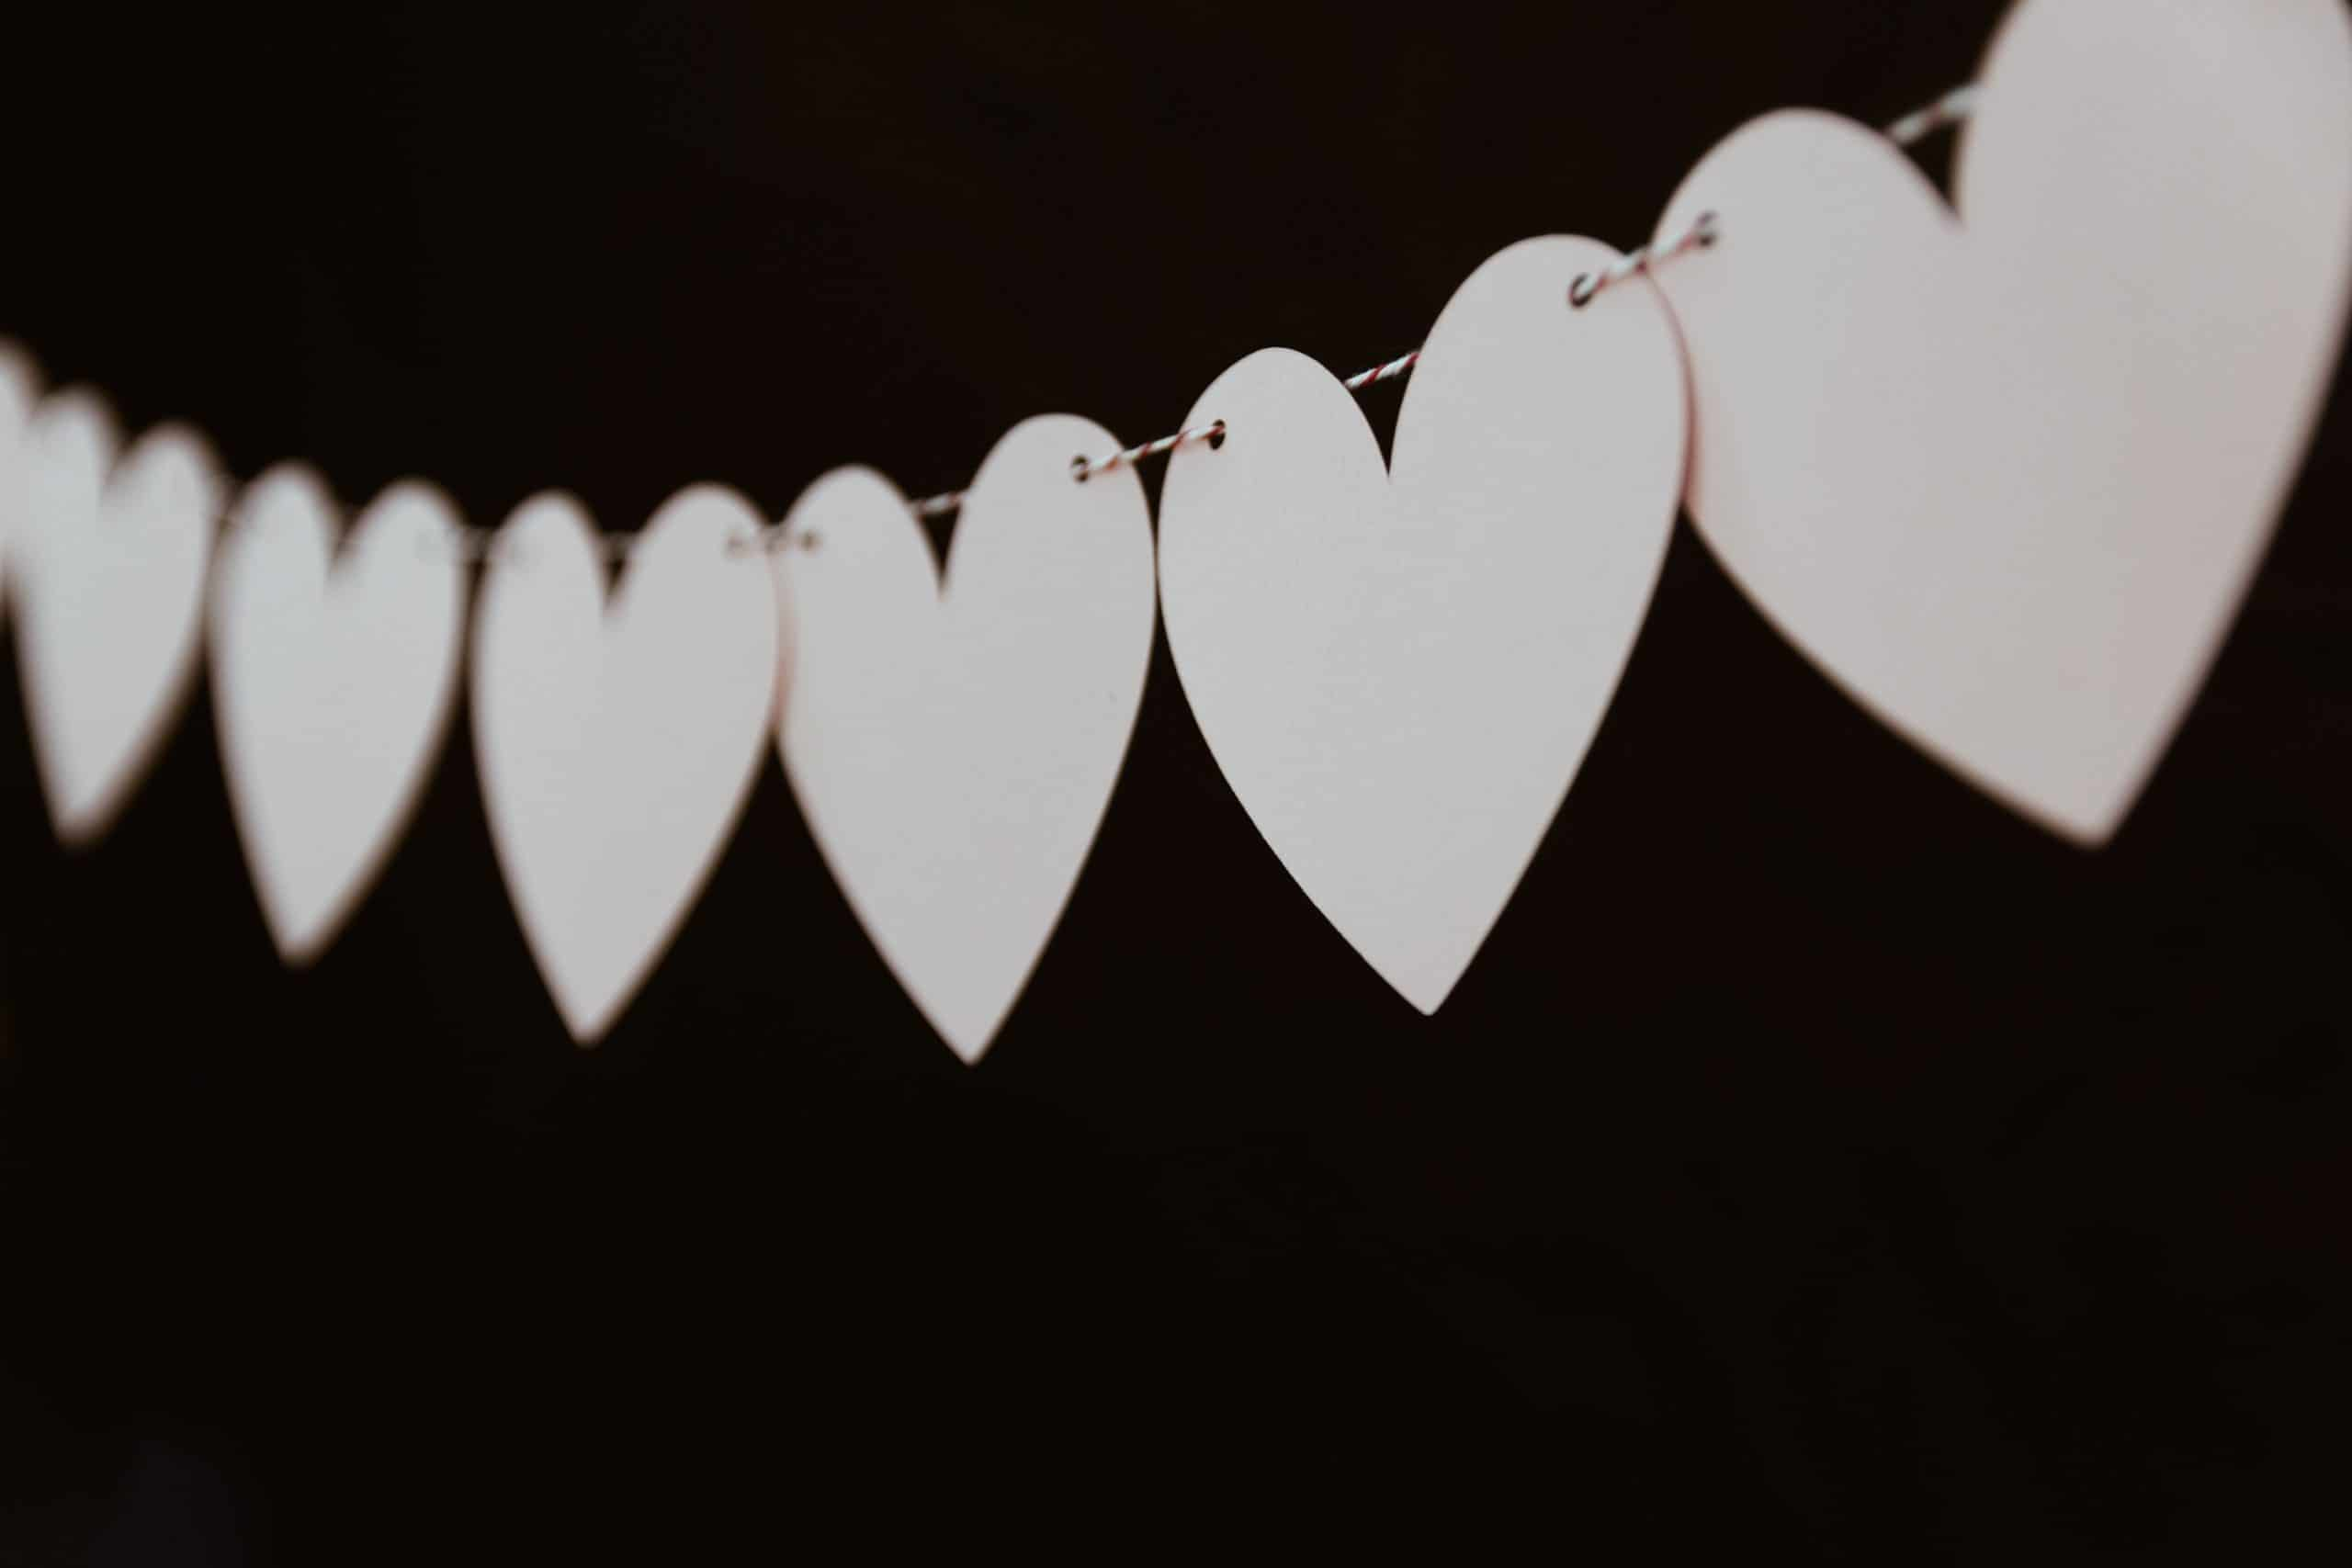 Picture has a string of white hearts on black background